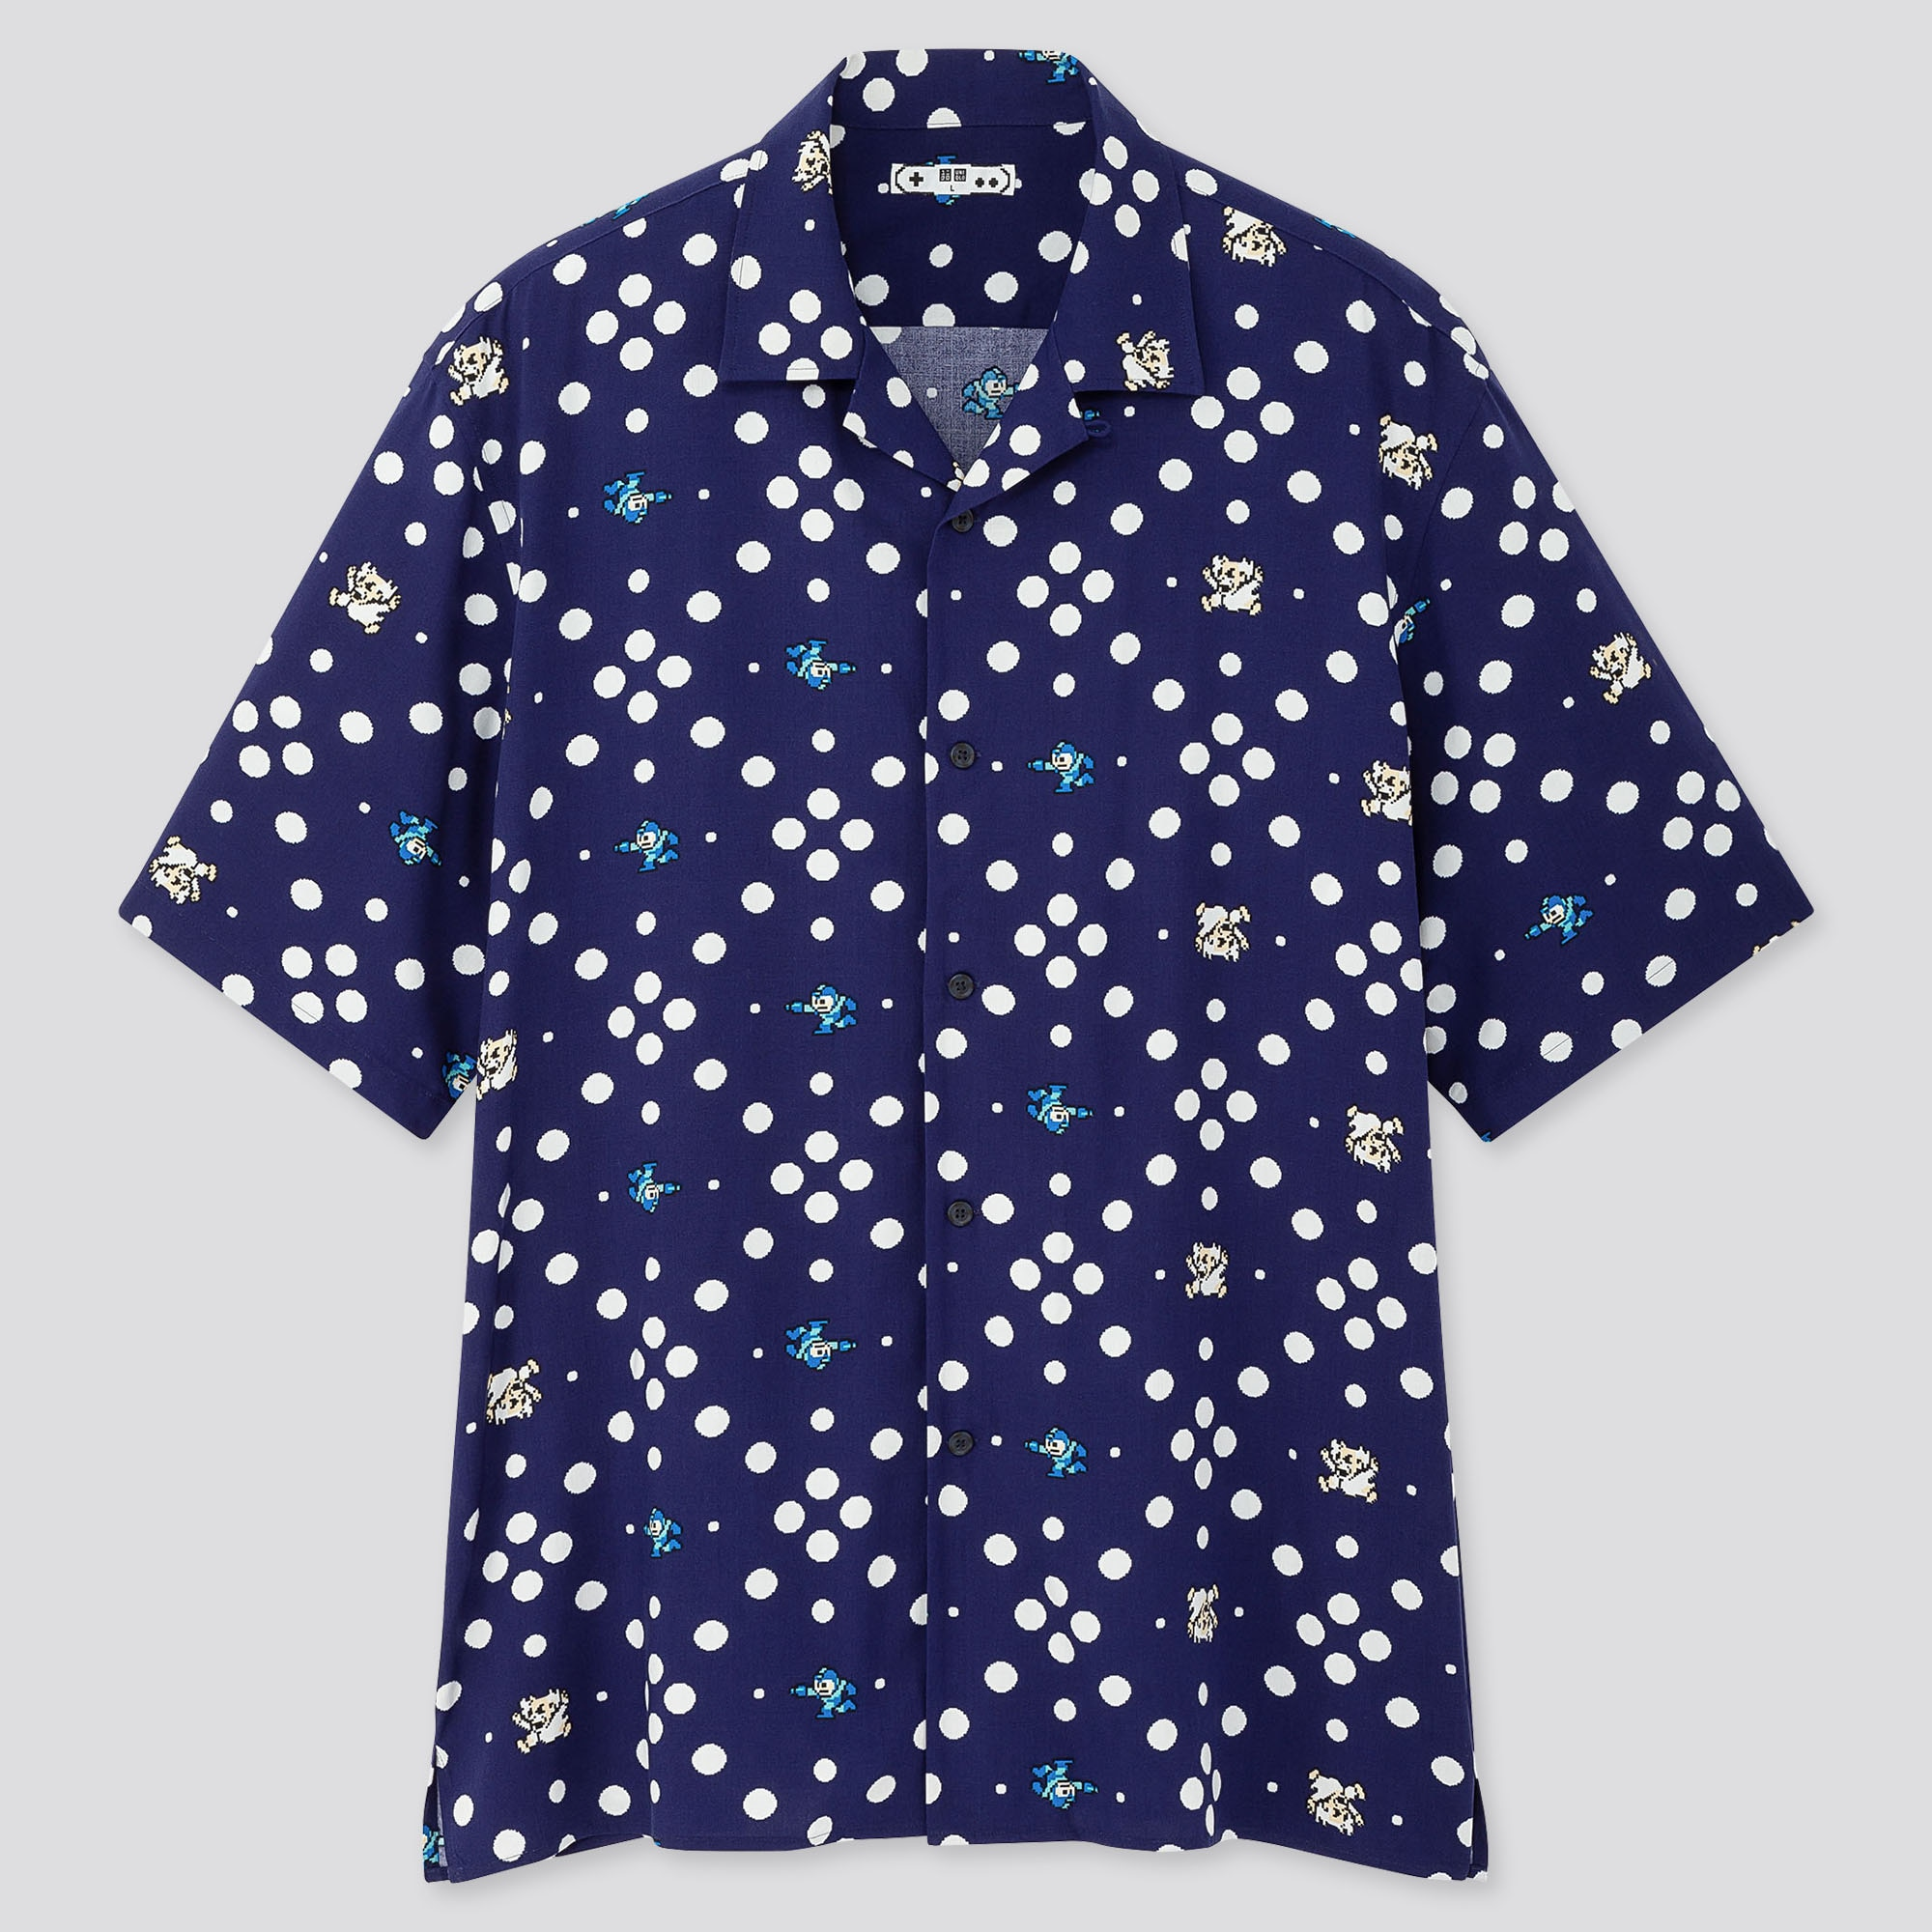 Men The Game Pixels Open Collar Short Sleeve Shirt by Uniqlo